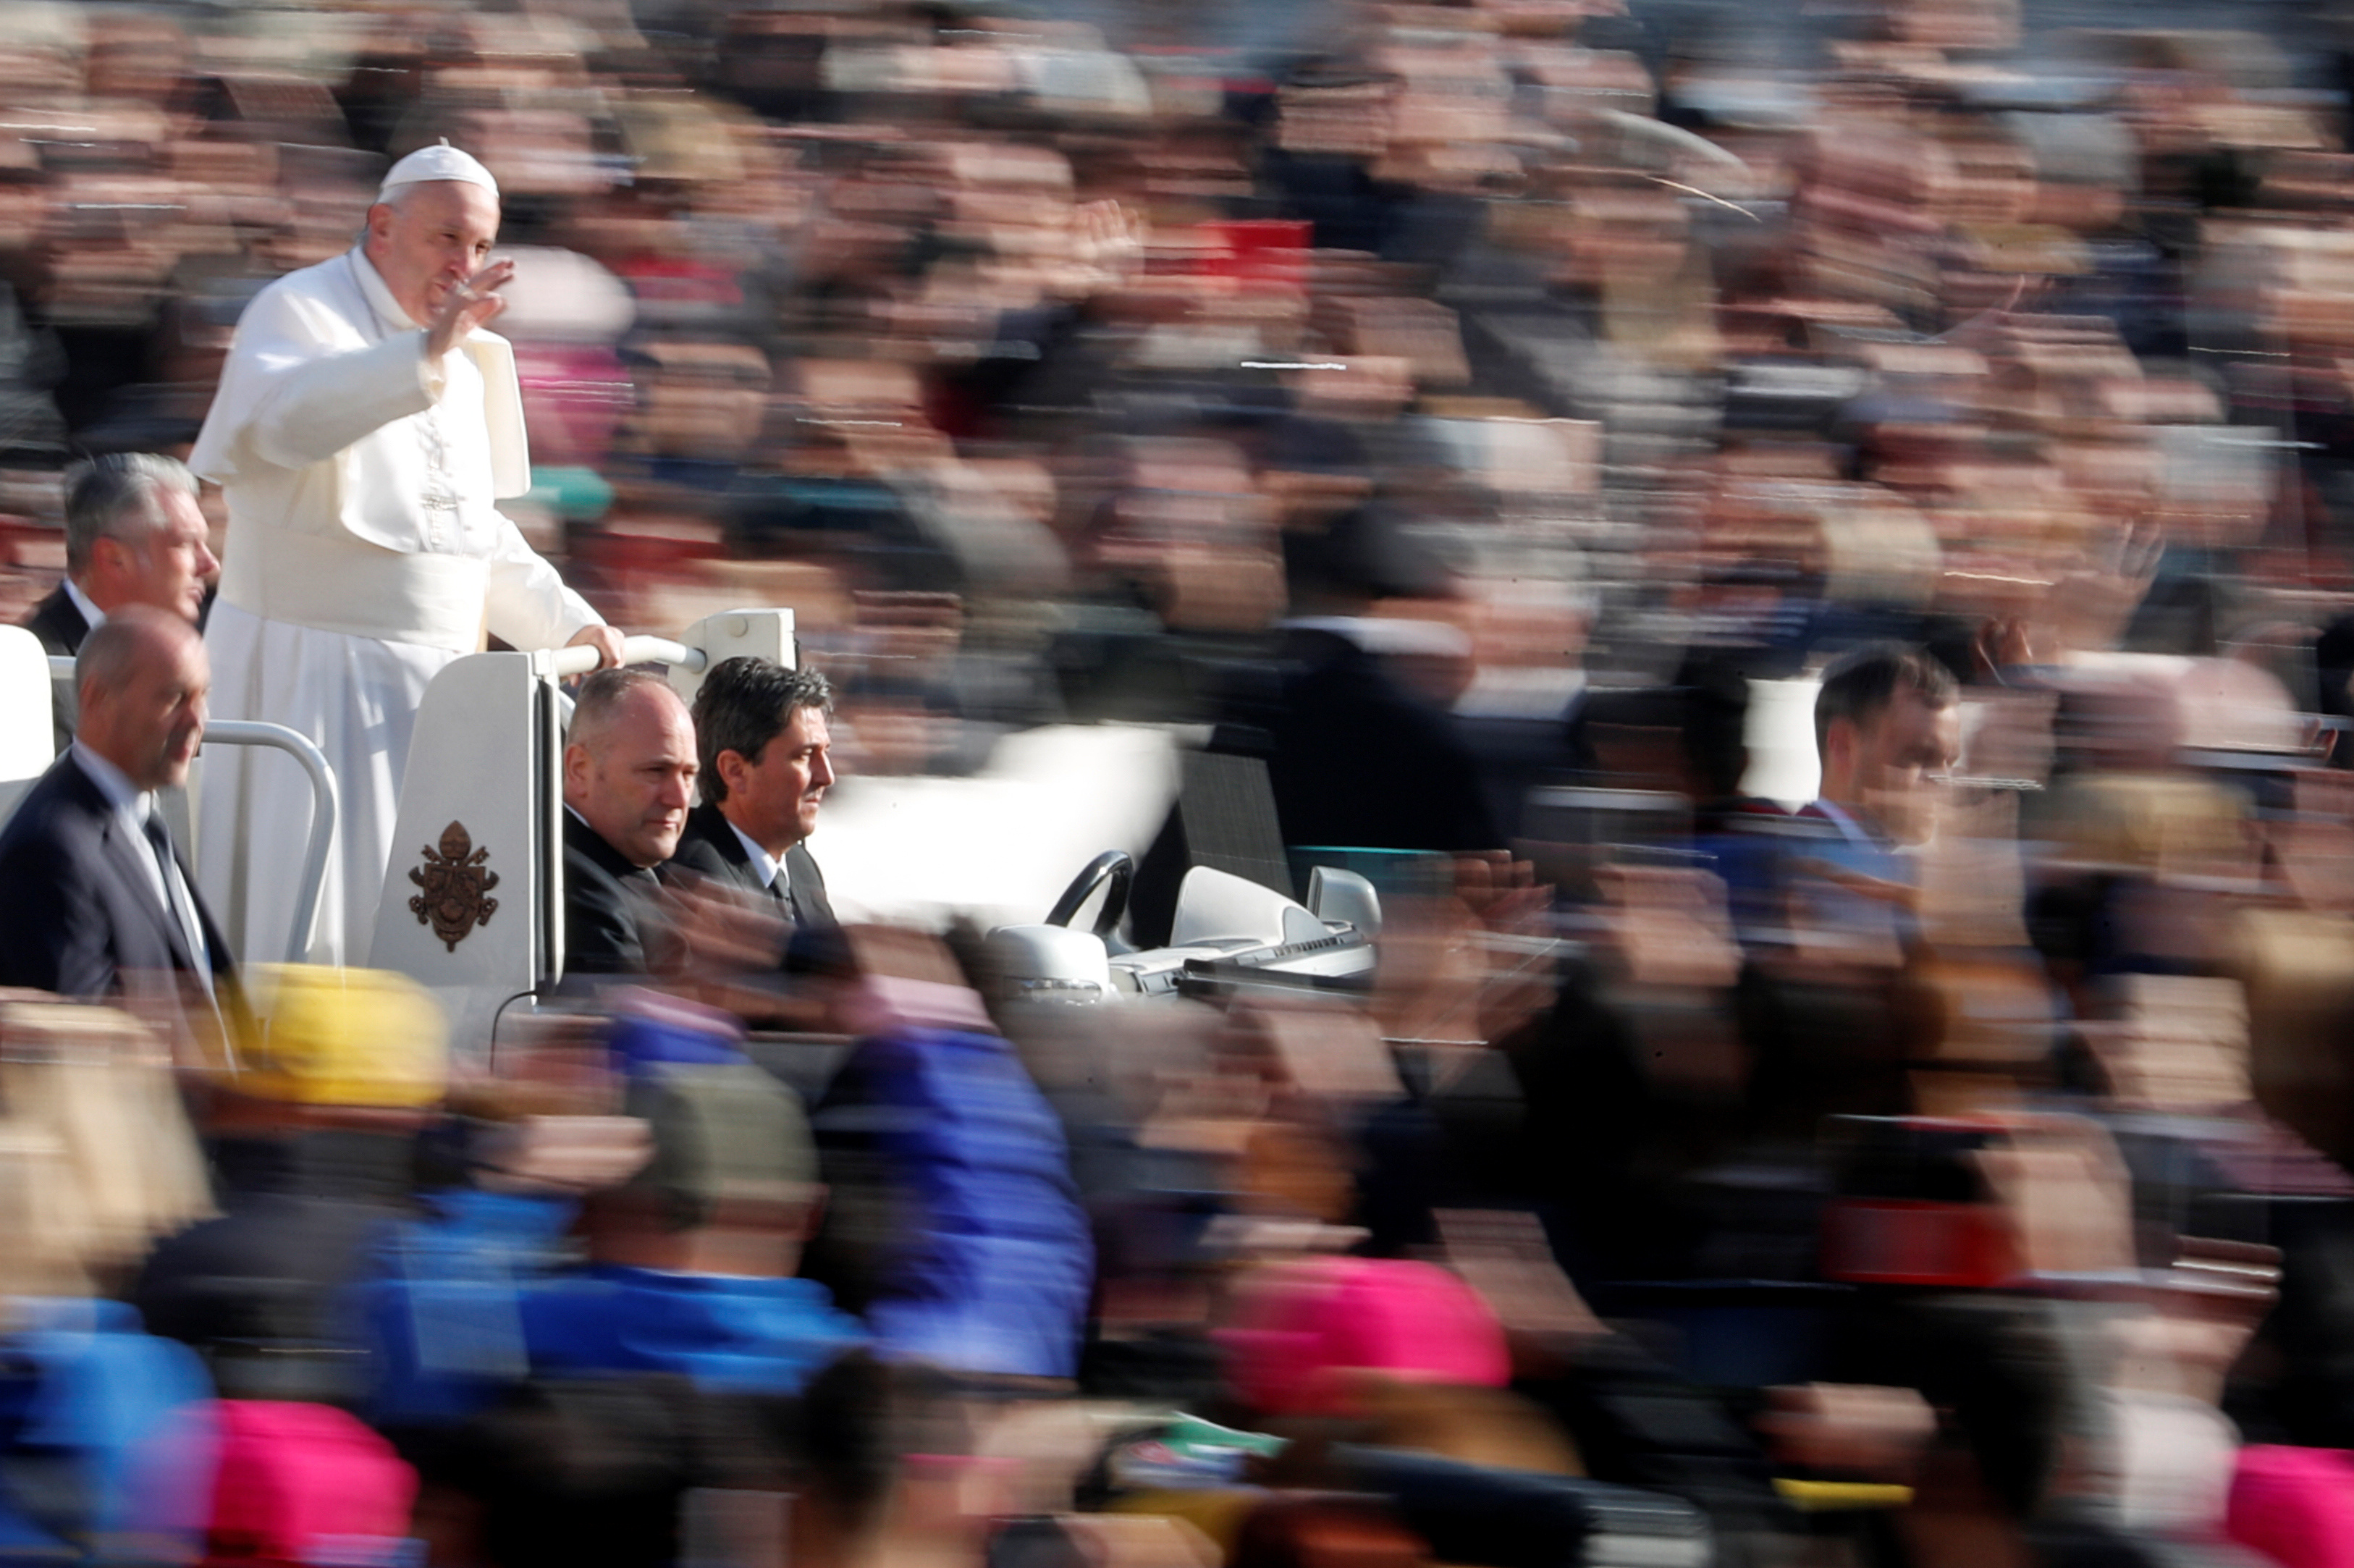 Pope Francis arrives to lead the weekly general audience in Saint Peter's Square at the Vatican November 14, 2018. REUTERS/Max Rossi